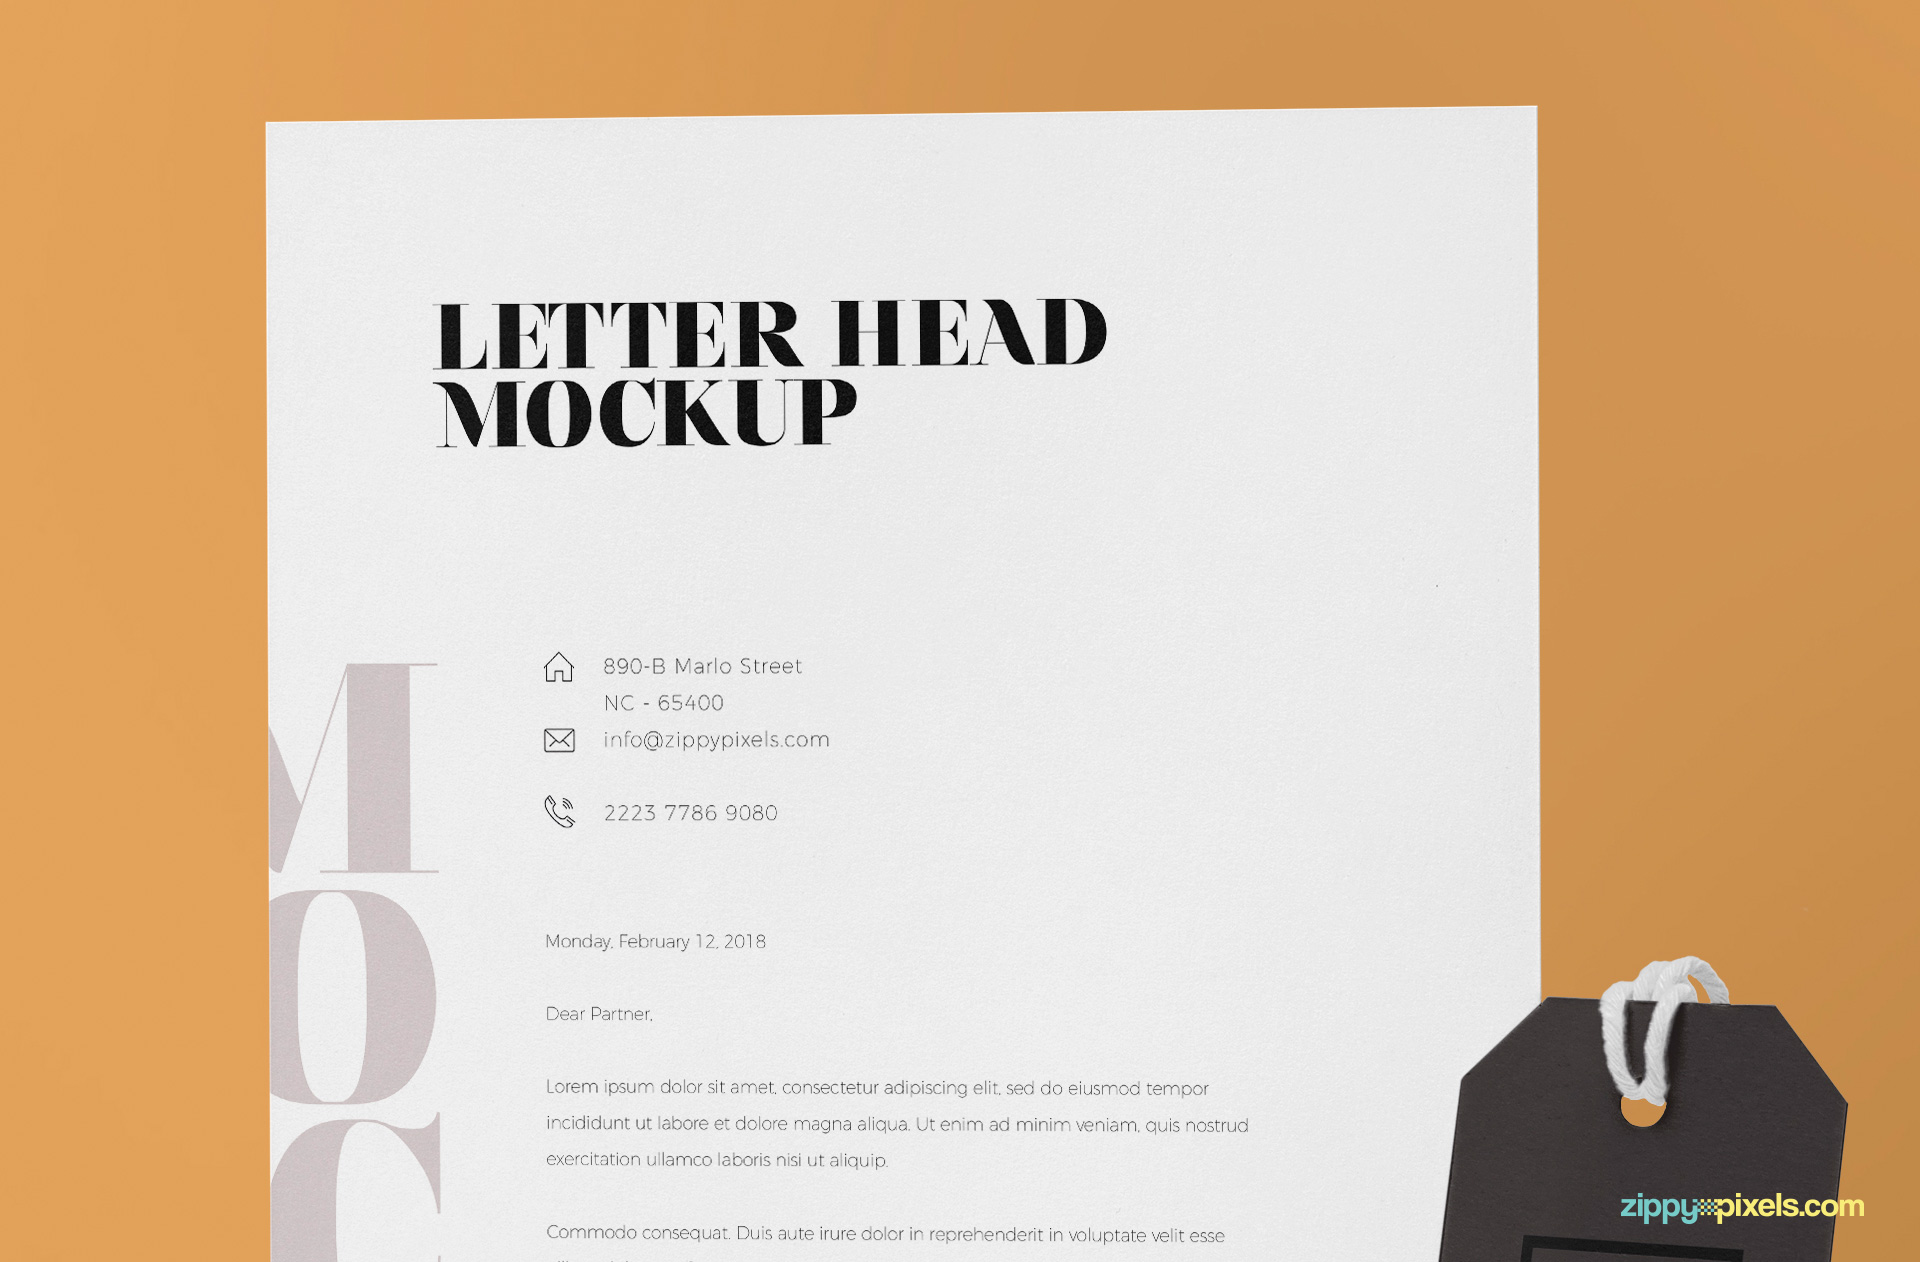 Standard A4 size letterhead to showcase your design.